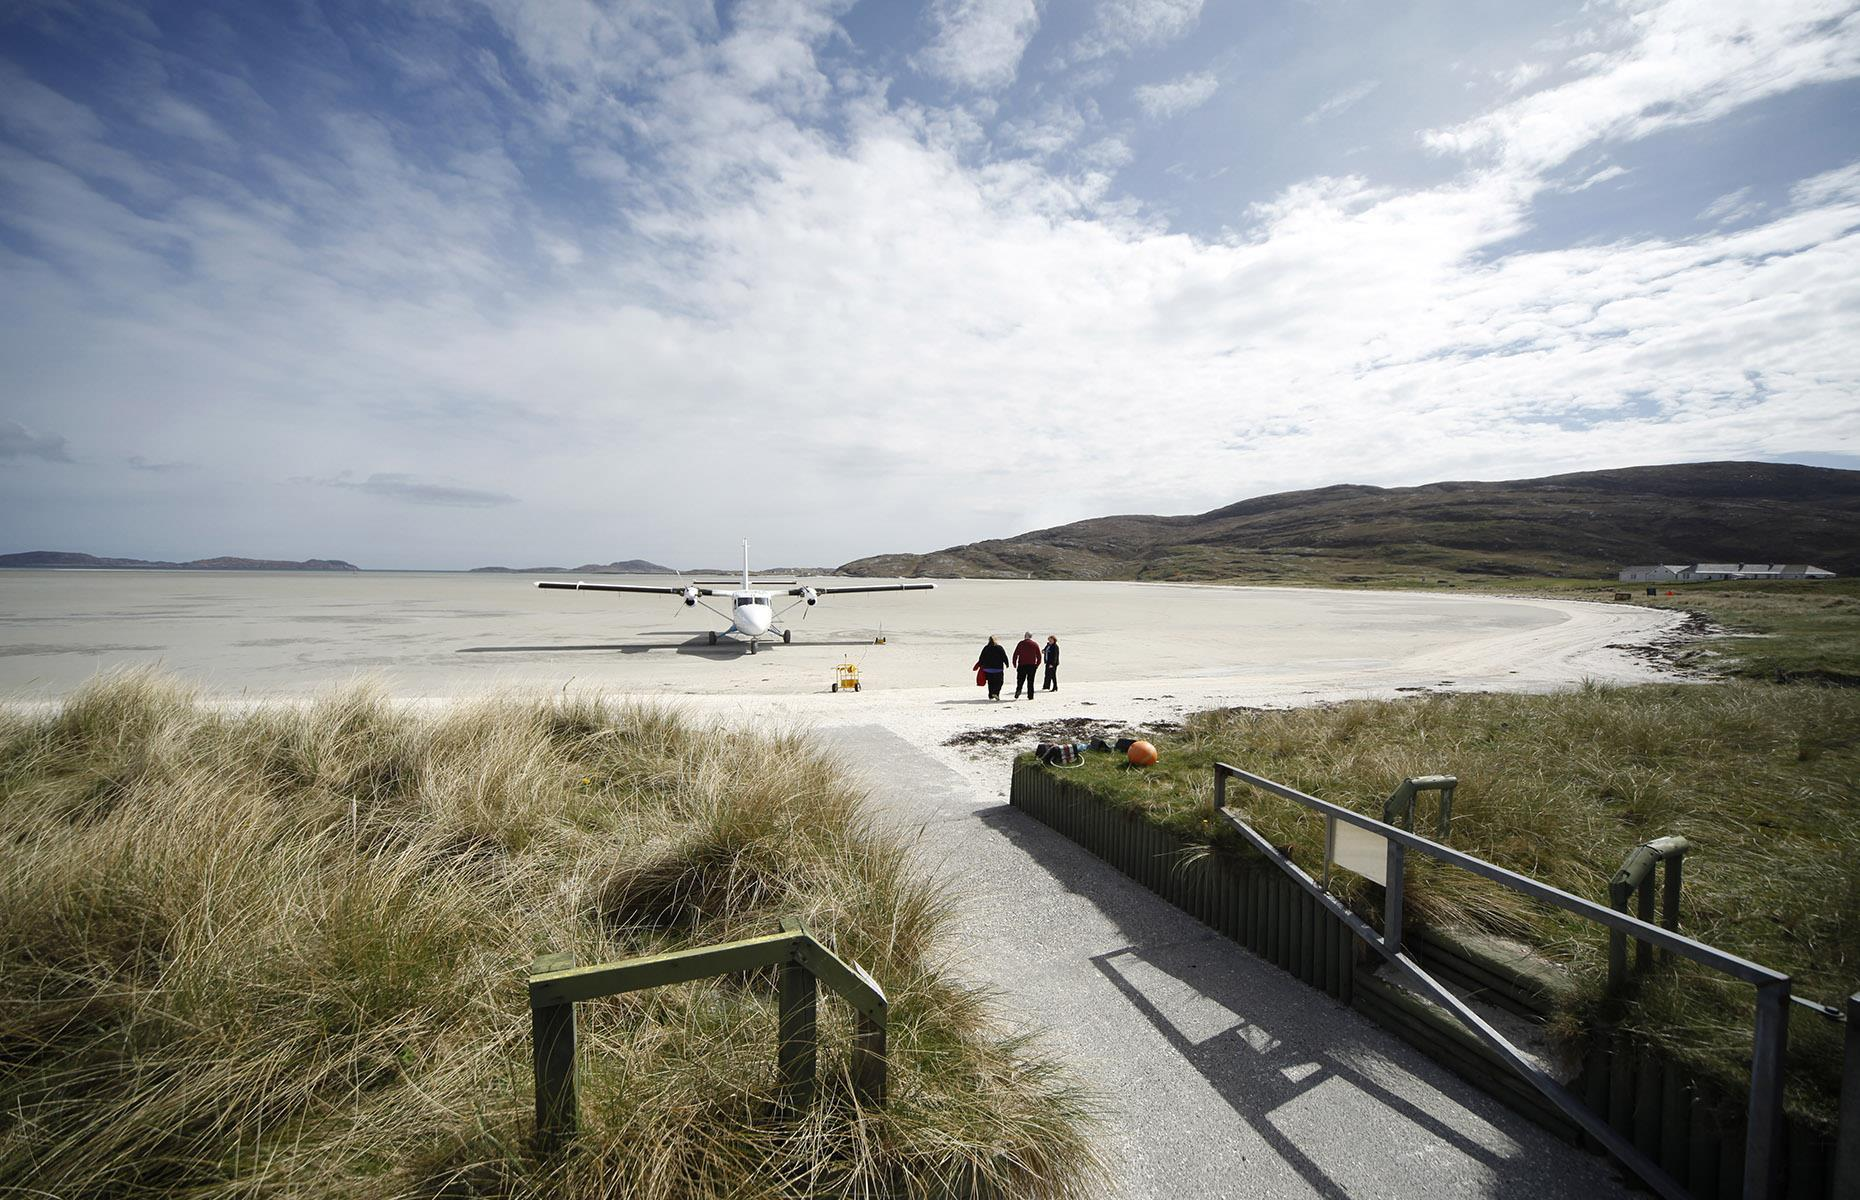 Slide 9 of 44: It may be remote but, according to HIAL, in a normal year around 10,000 passengers pass through Barra airport. The beach is also popular with cockle collectors who are warned to steer clear of the landing strips. As well as a terminal building with car hire and a café, Barra has its own fire crew, although they're more often called out to save stranded seals or dolphins than anything linked to the airport.